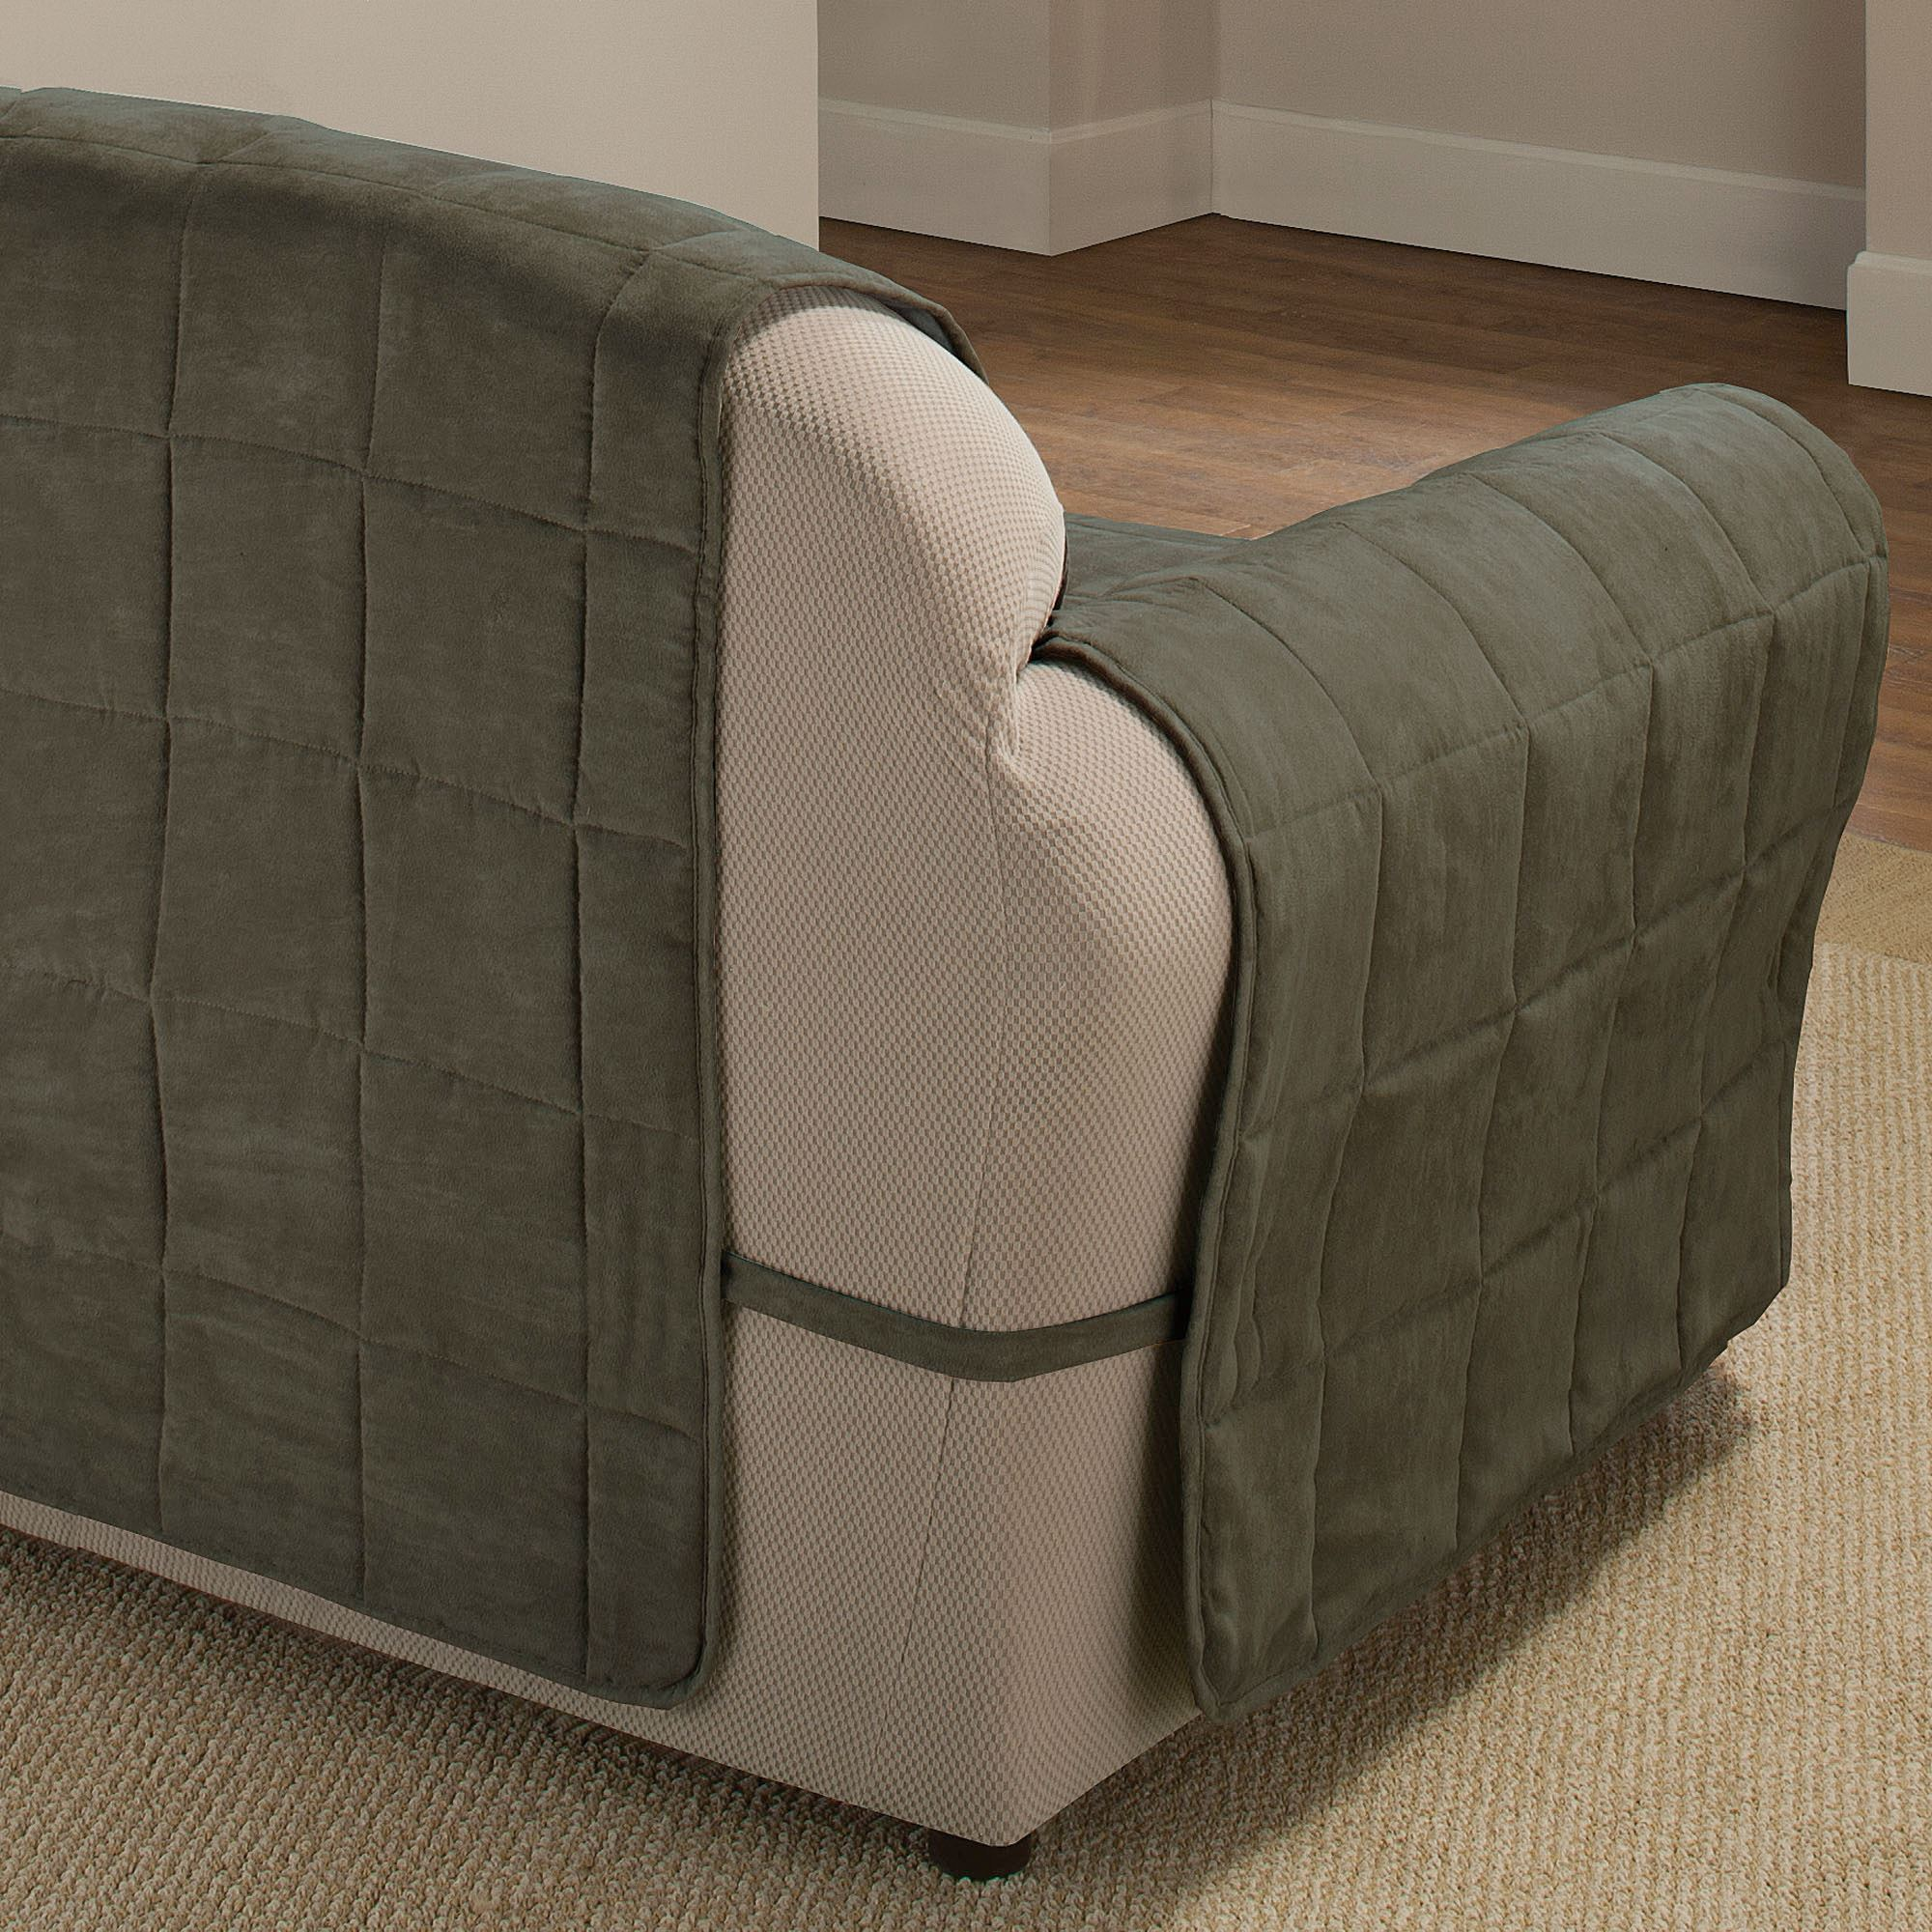 washing faux suede sofa covers journey motion reviews ultimate pet furniture protectors with straps